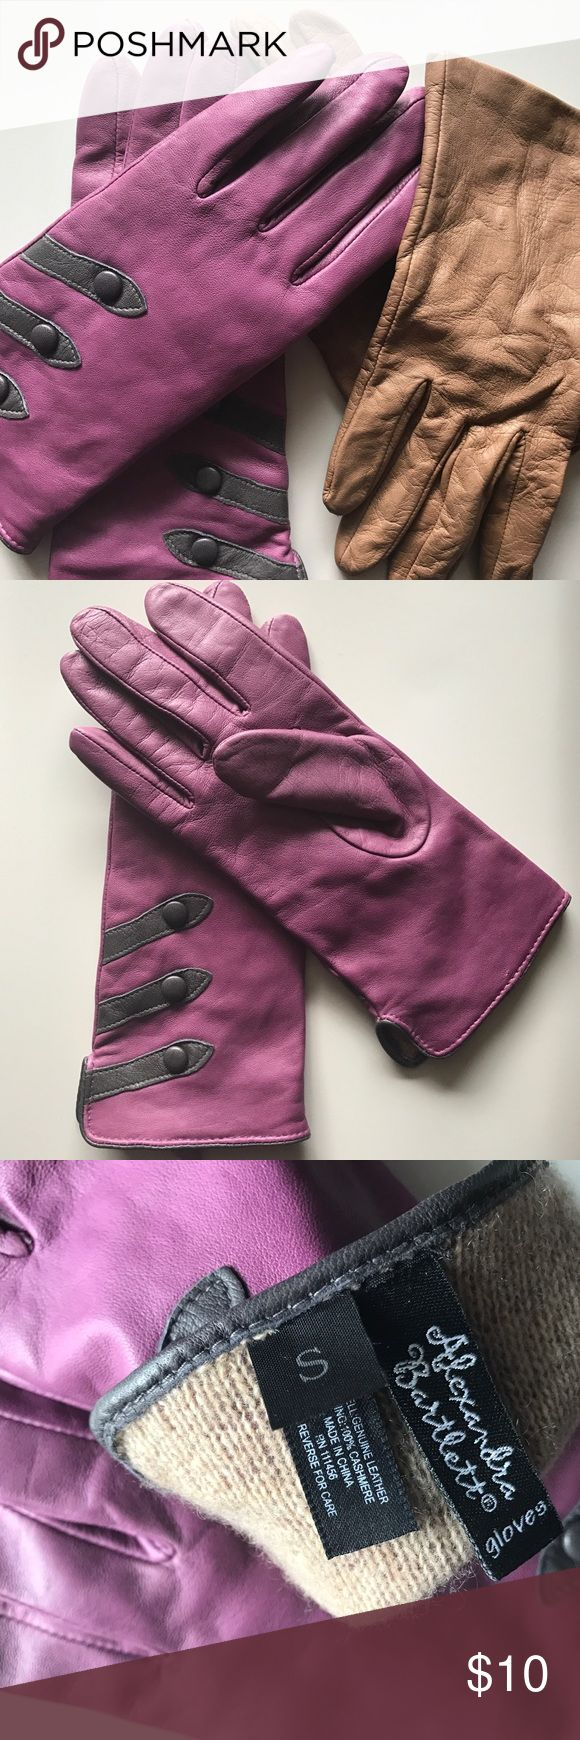 Fitted Genuine Leather Driving Gloves Bundle 2 for 1 Fitted Leather Glove Bundle! Both size small and super soft leather. Purple pair with Charcoal Gray accent detail is lined with cashmere. Camel pair is fitted and flexible, almost like a second skin. Both worn a handful of times. Accessories Gloves & Mittens